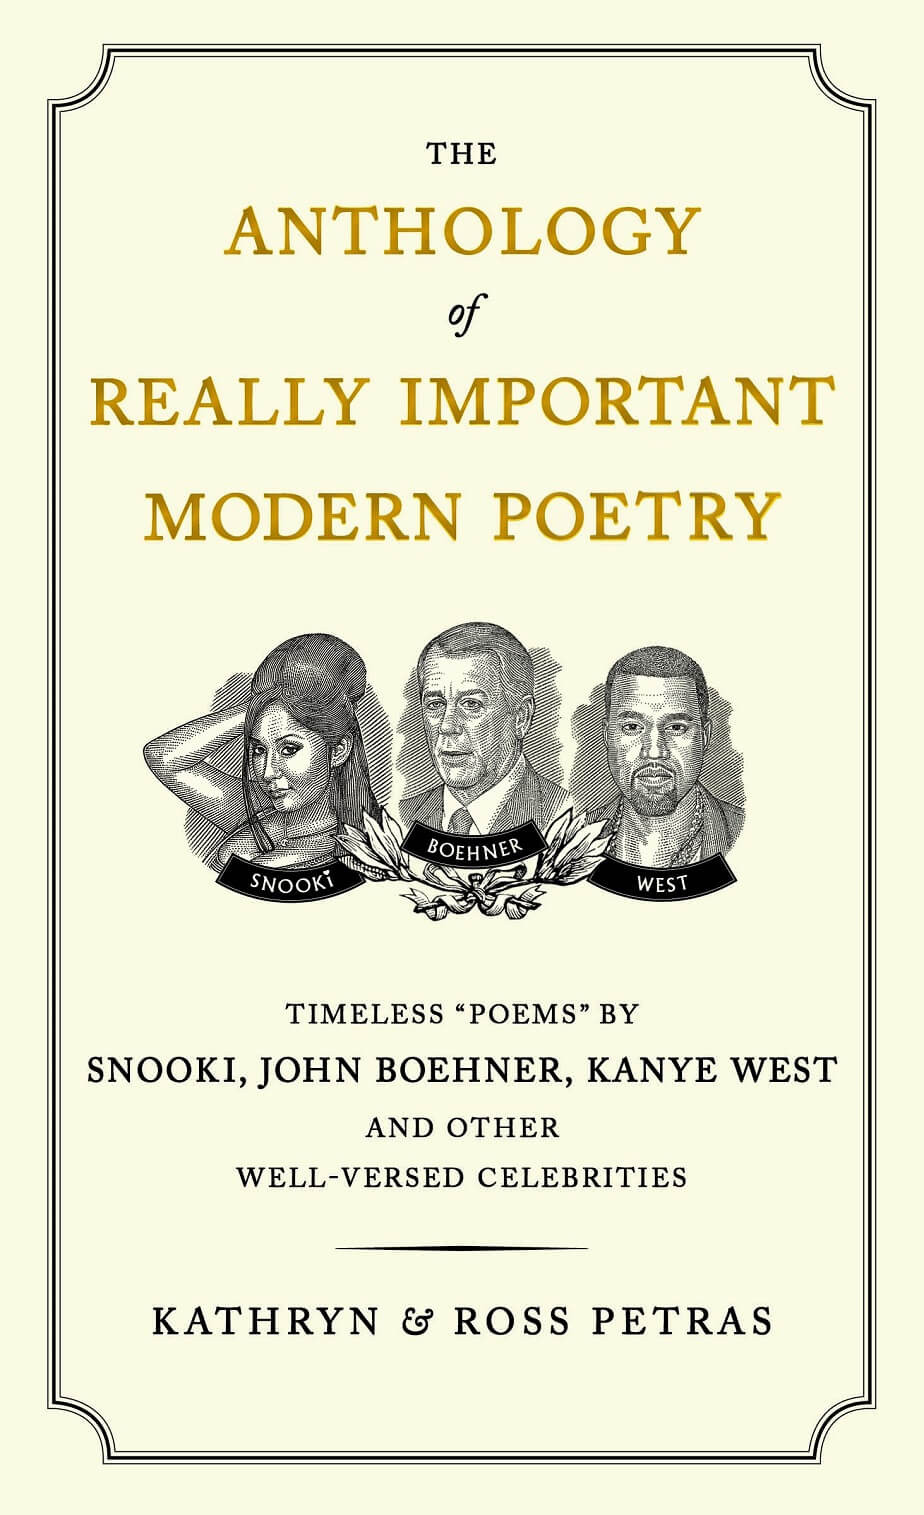 The Anthology of Really Important Modern Poetry by Kathryn & Ross Petras